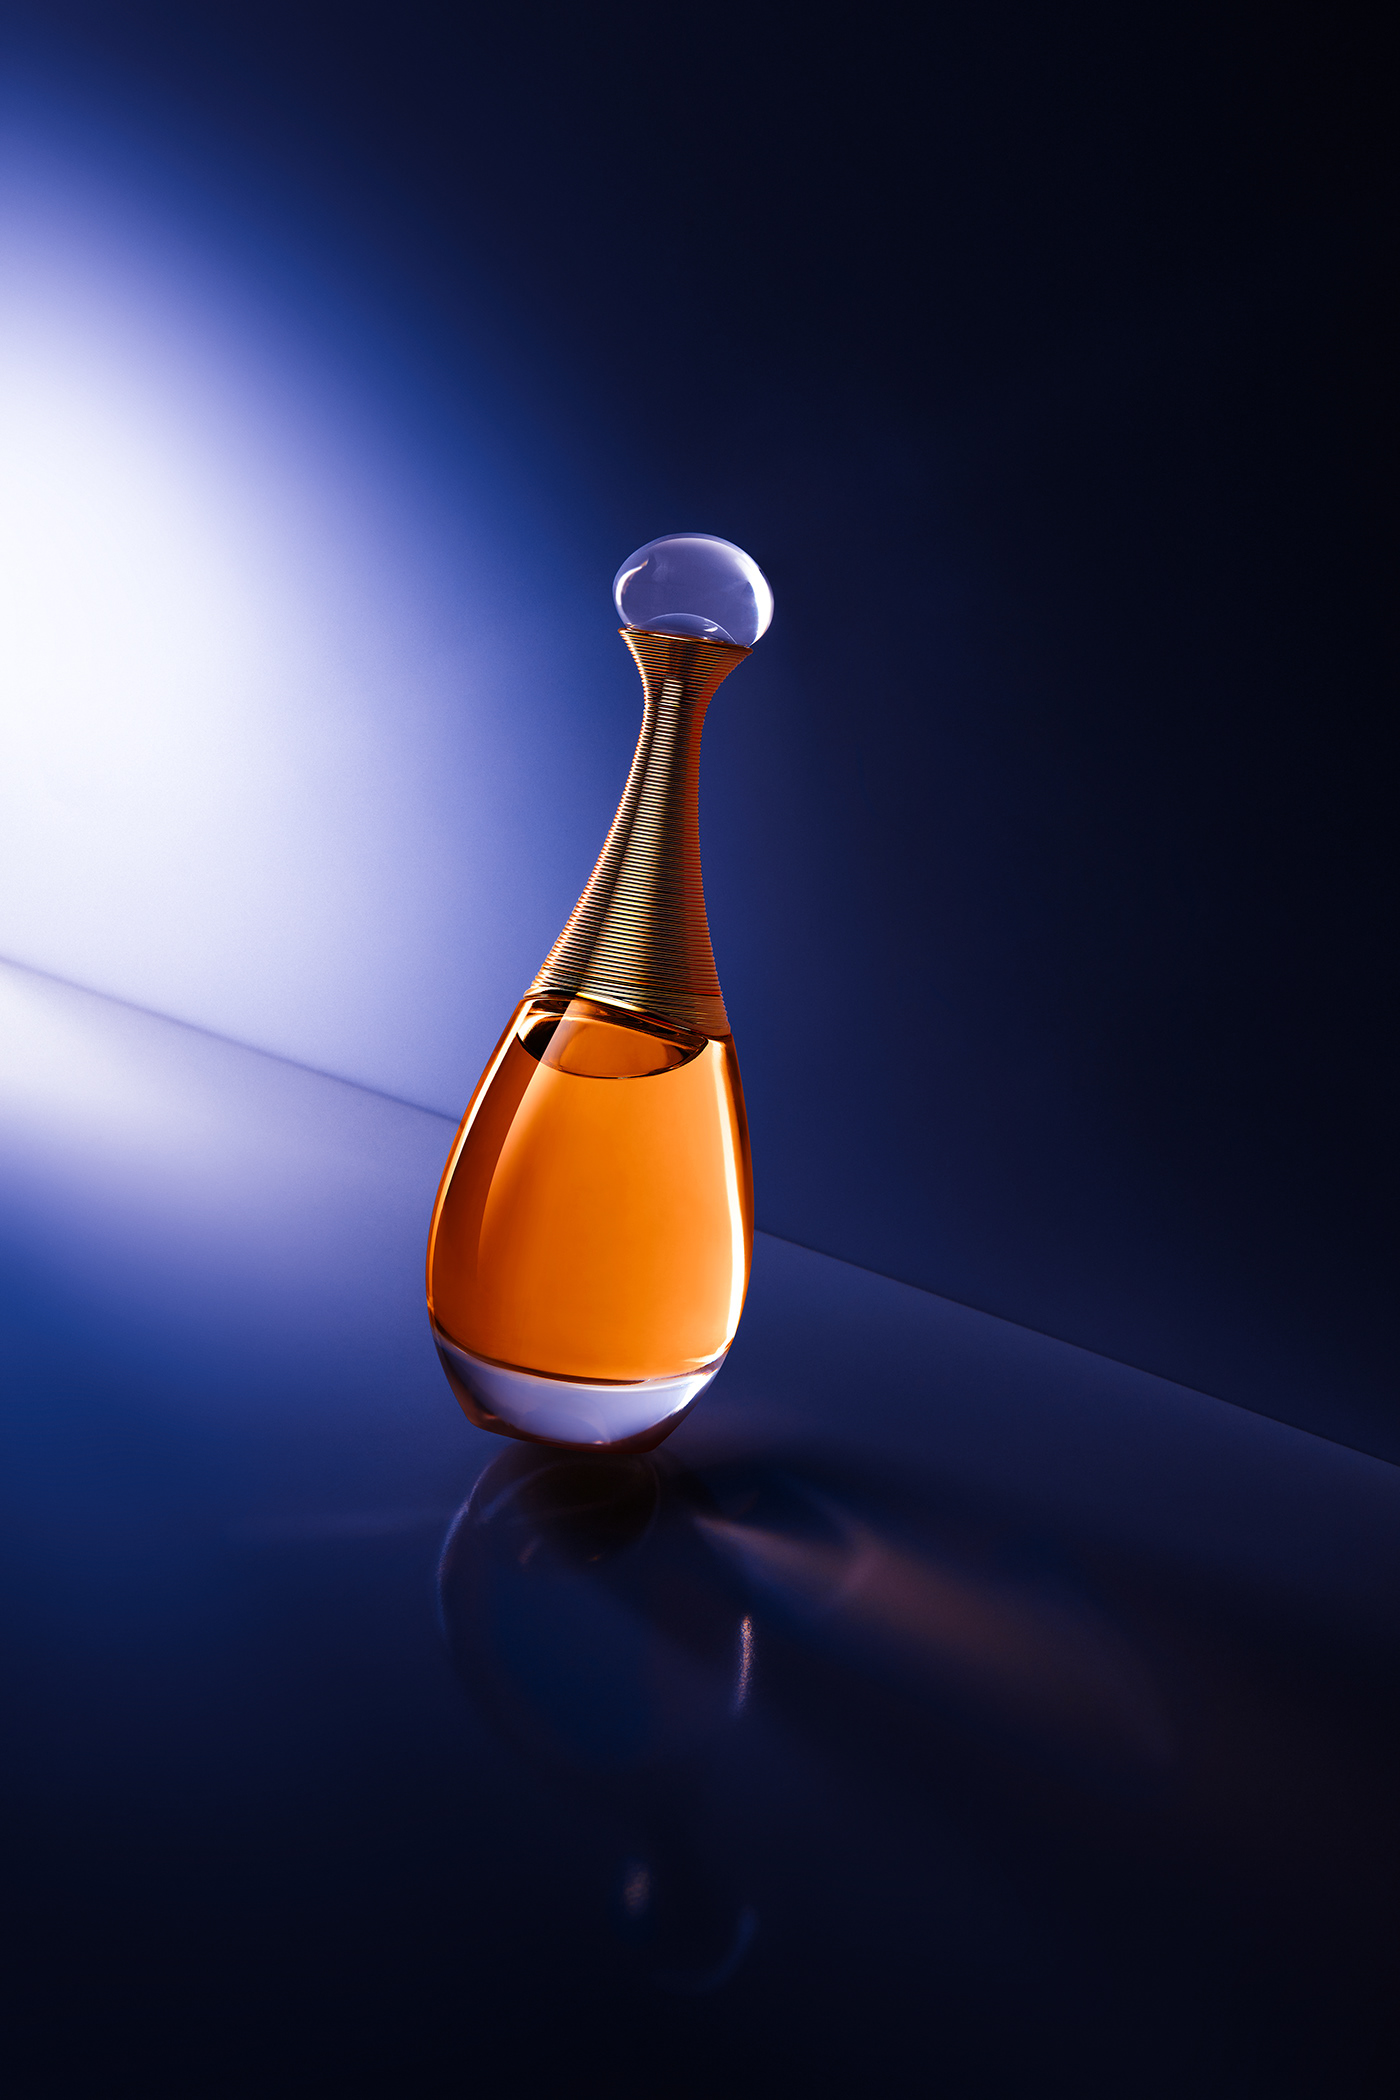 Advertising  bottle commercial Dior Dior J'adore jadore perfume product Product Photography dior parfum